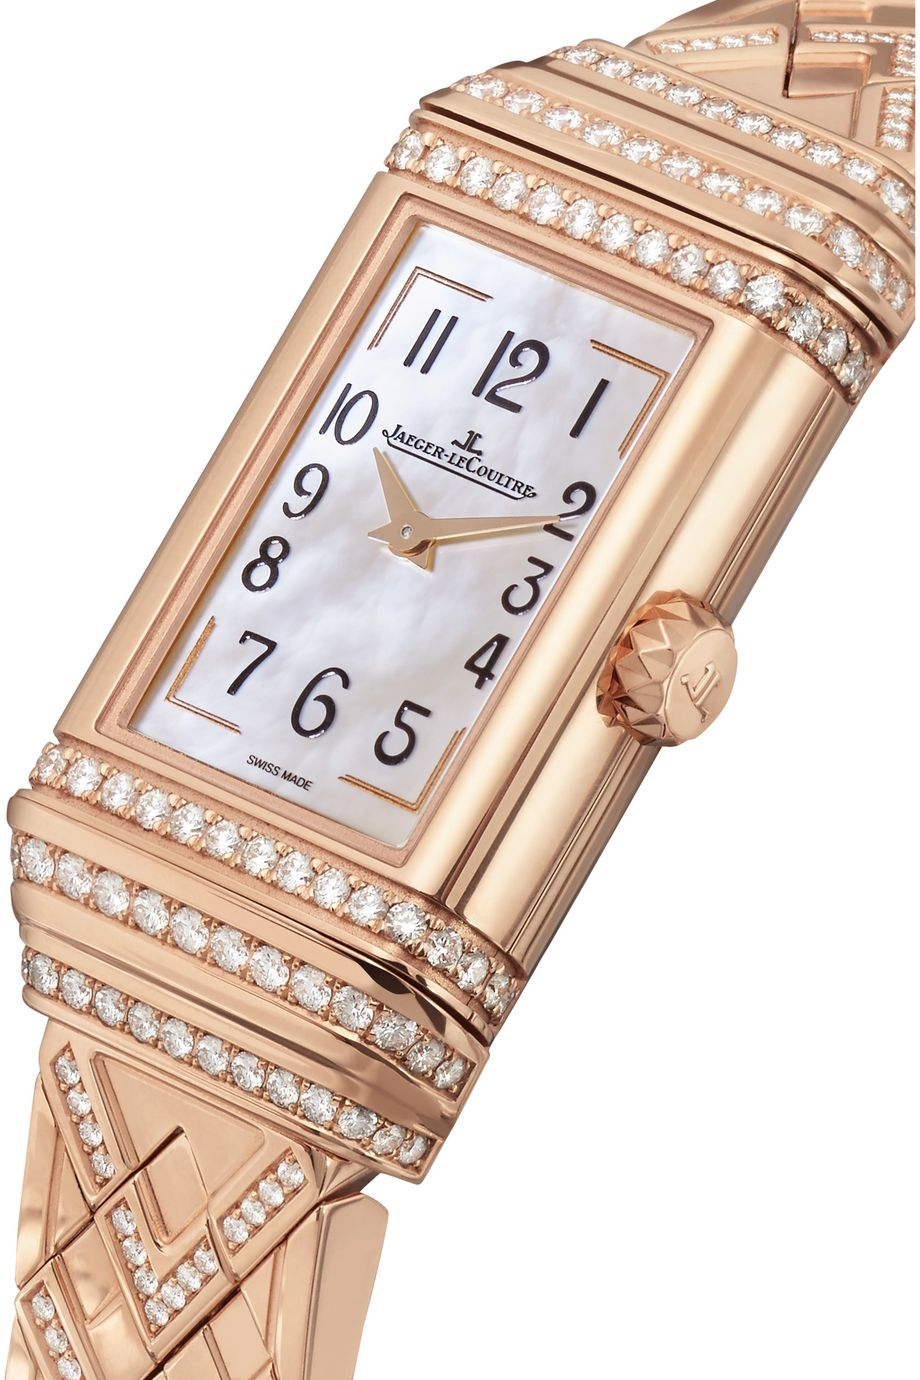 Jaeger-LeCoultre Reverso One Duetto rose gold diamond watch